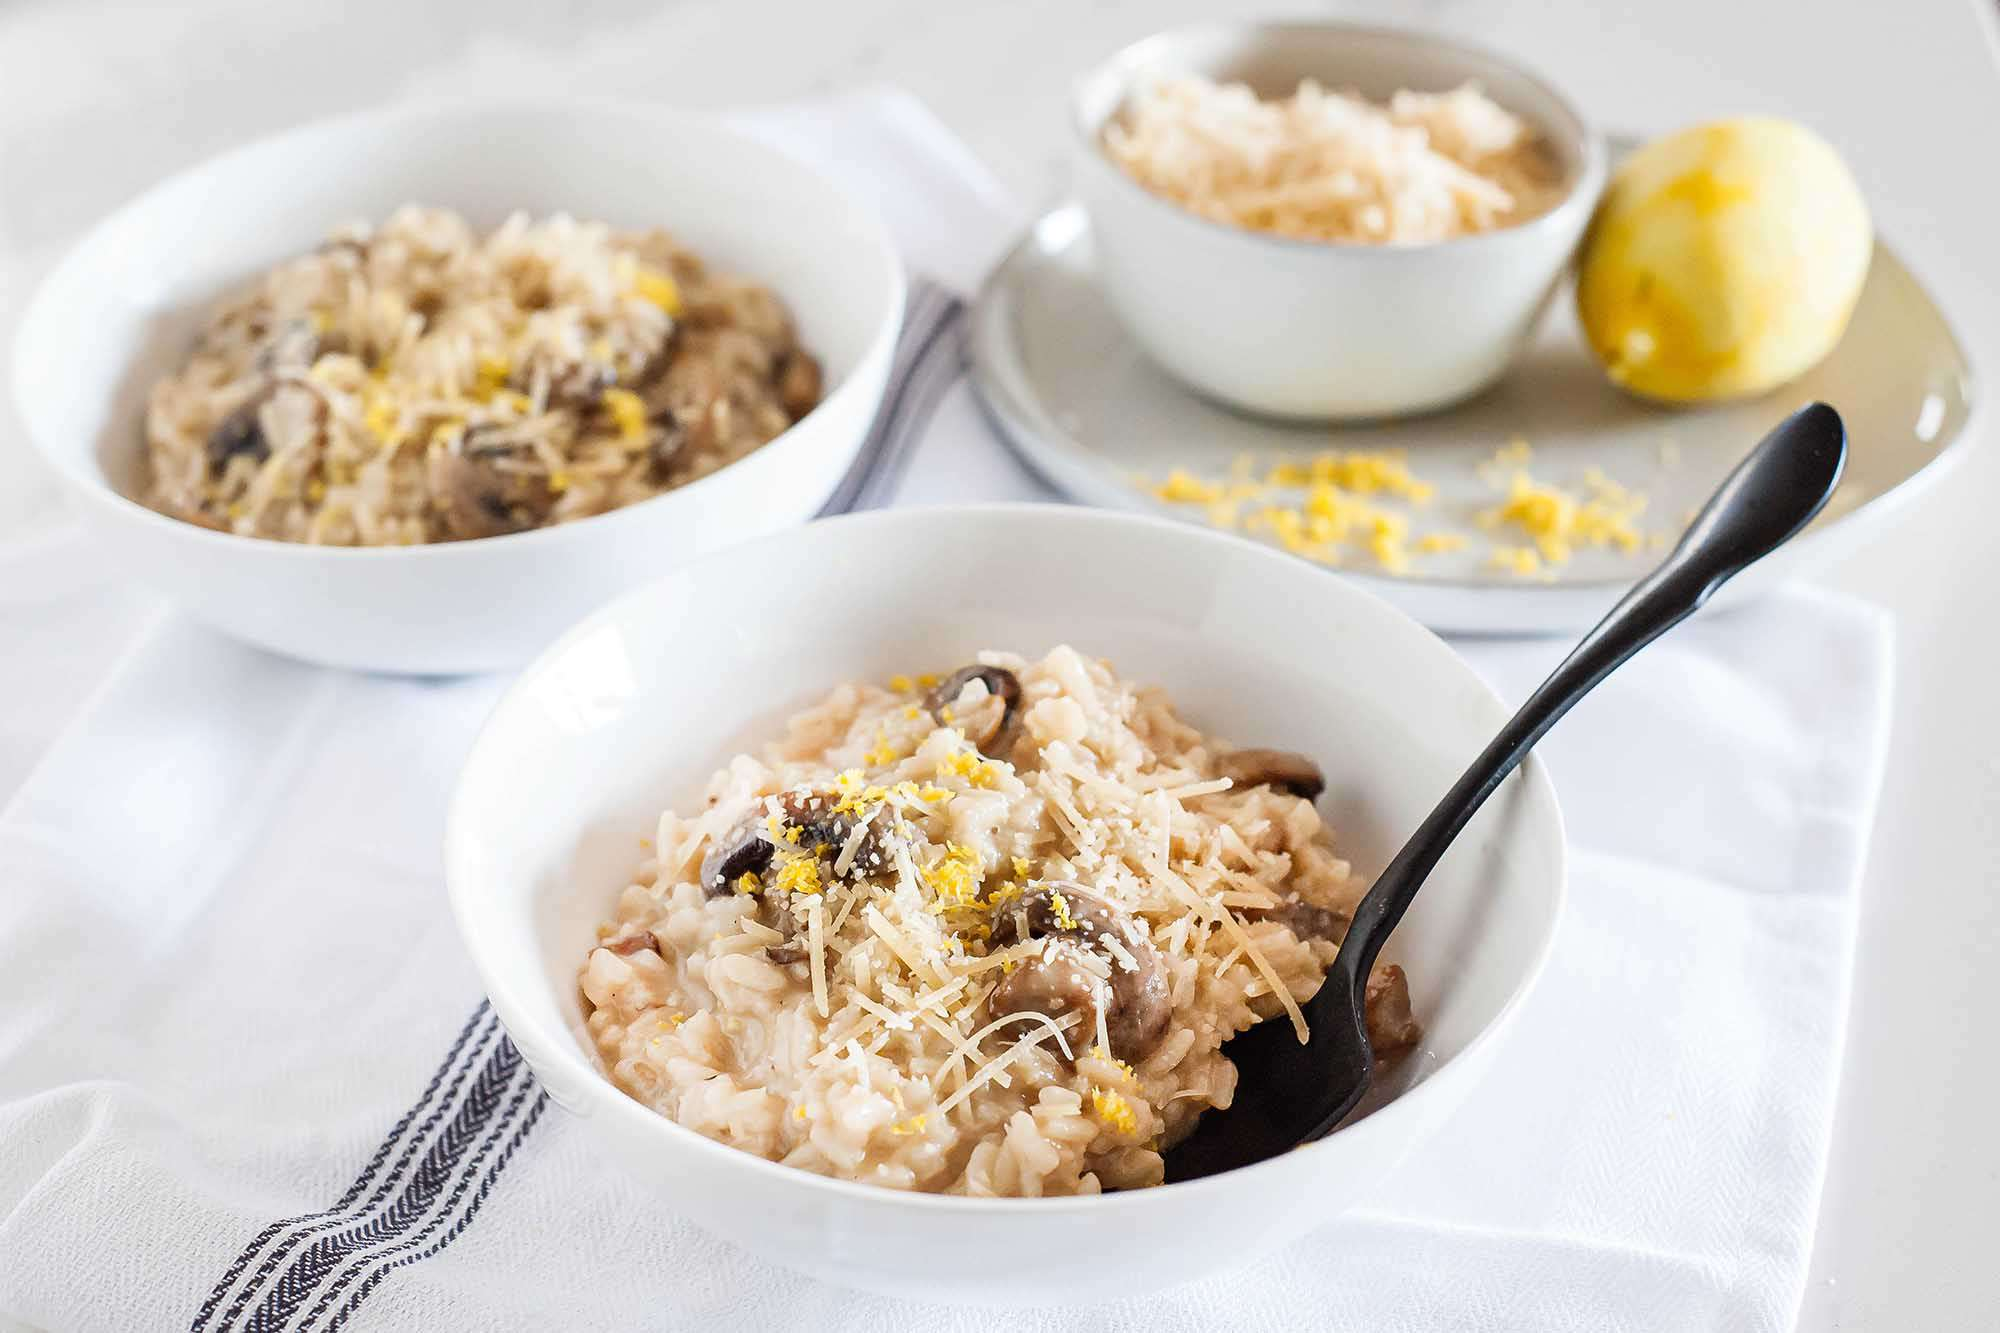 Risotto with Mushrooms - white bowls filed creamy mushroom risotto